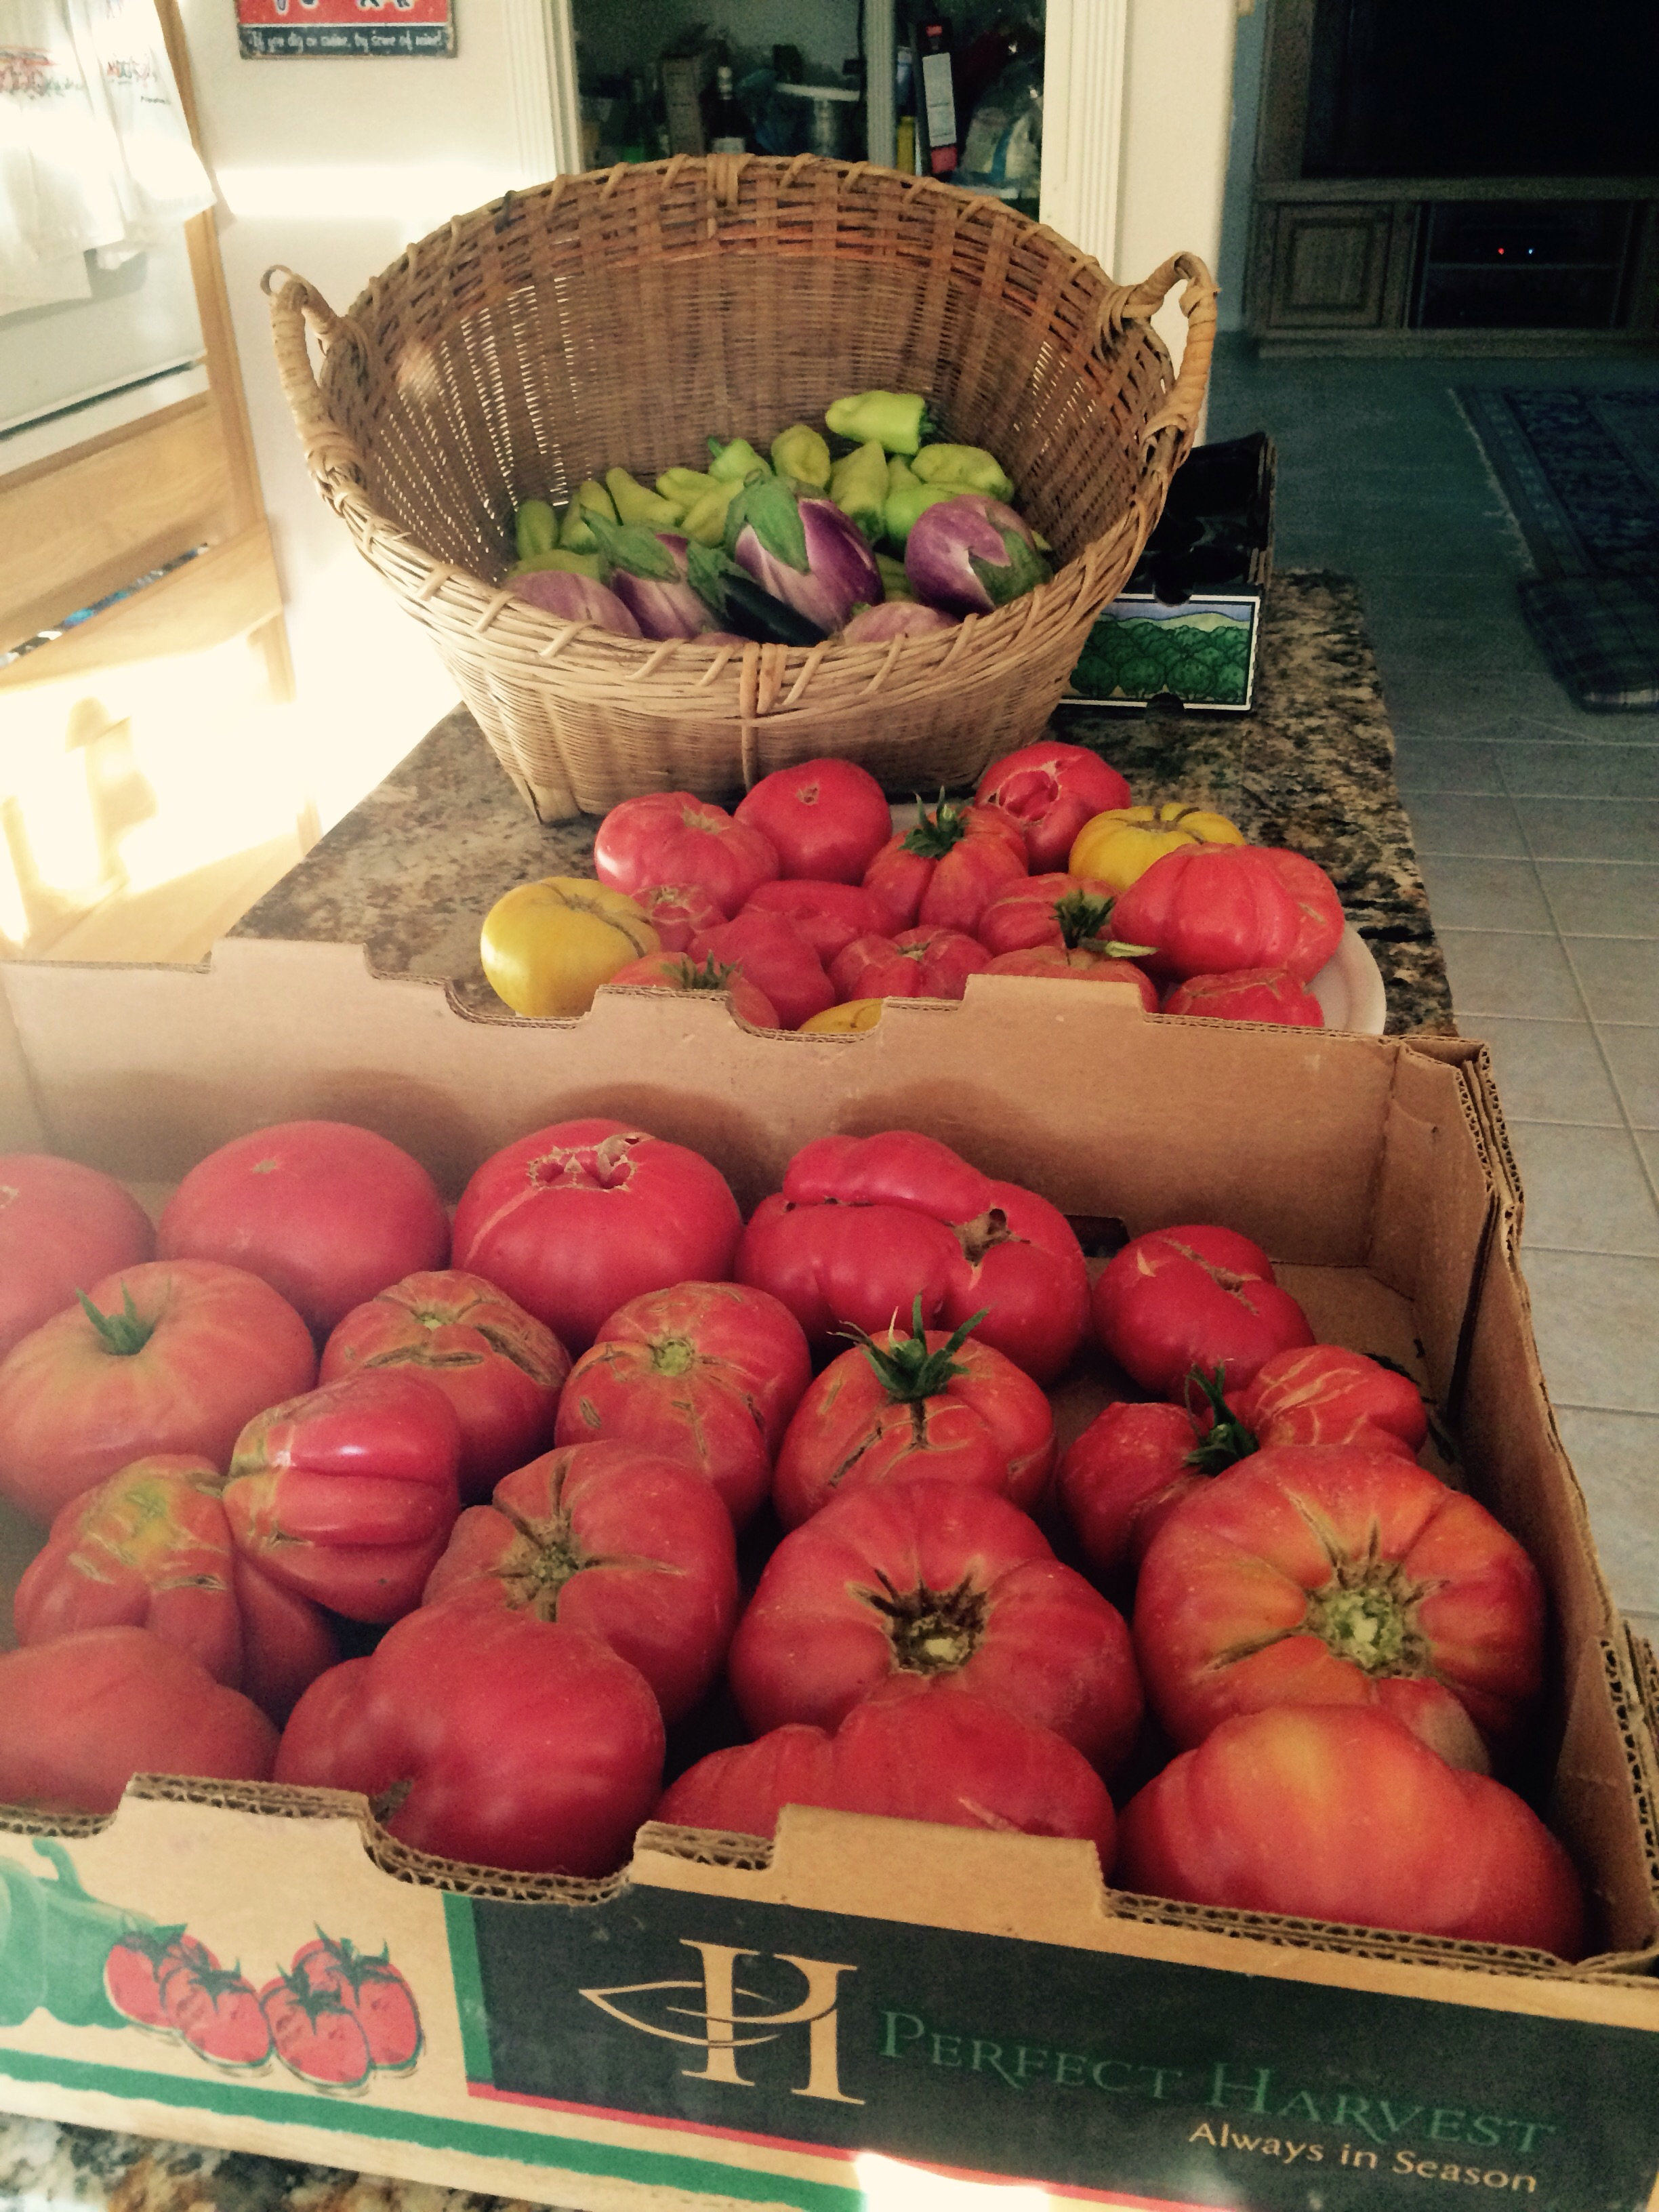 Loads of heirlooms ,tomatoes, eggplant, and peppers